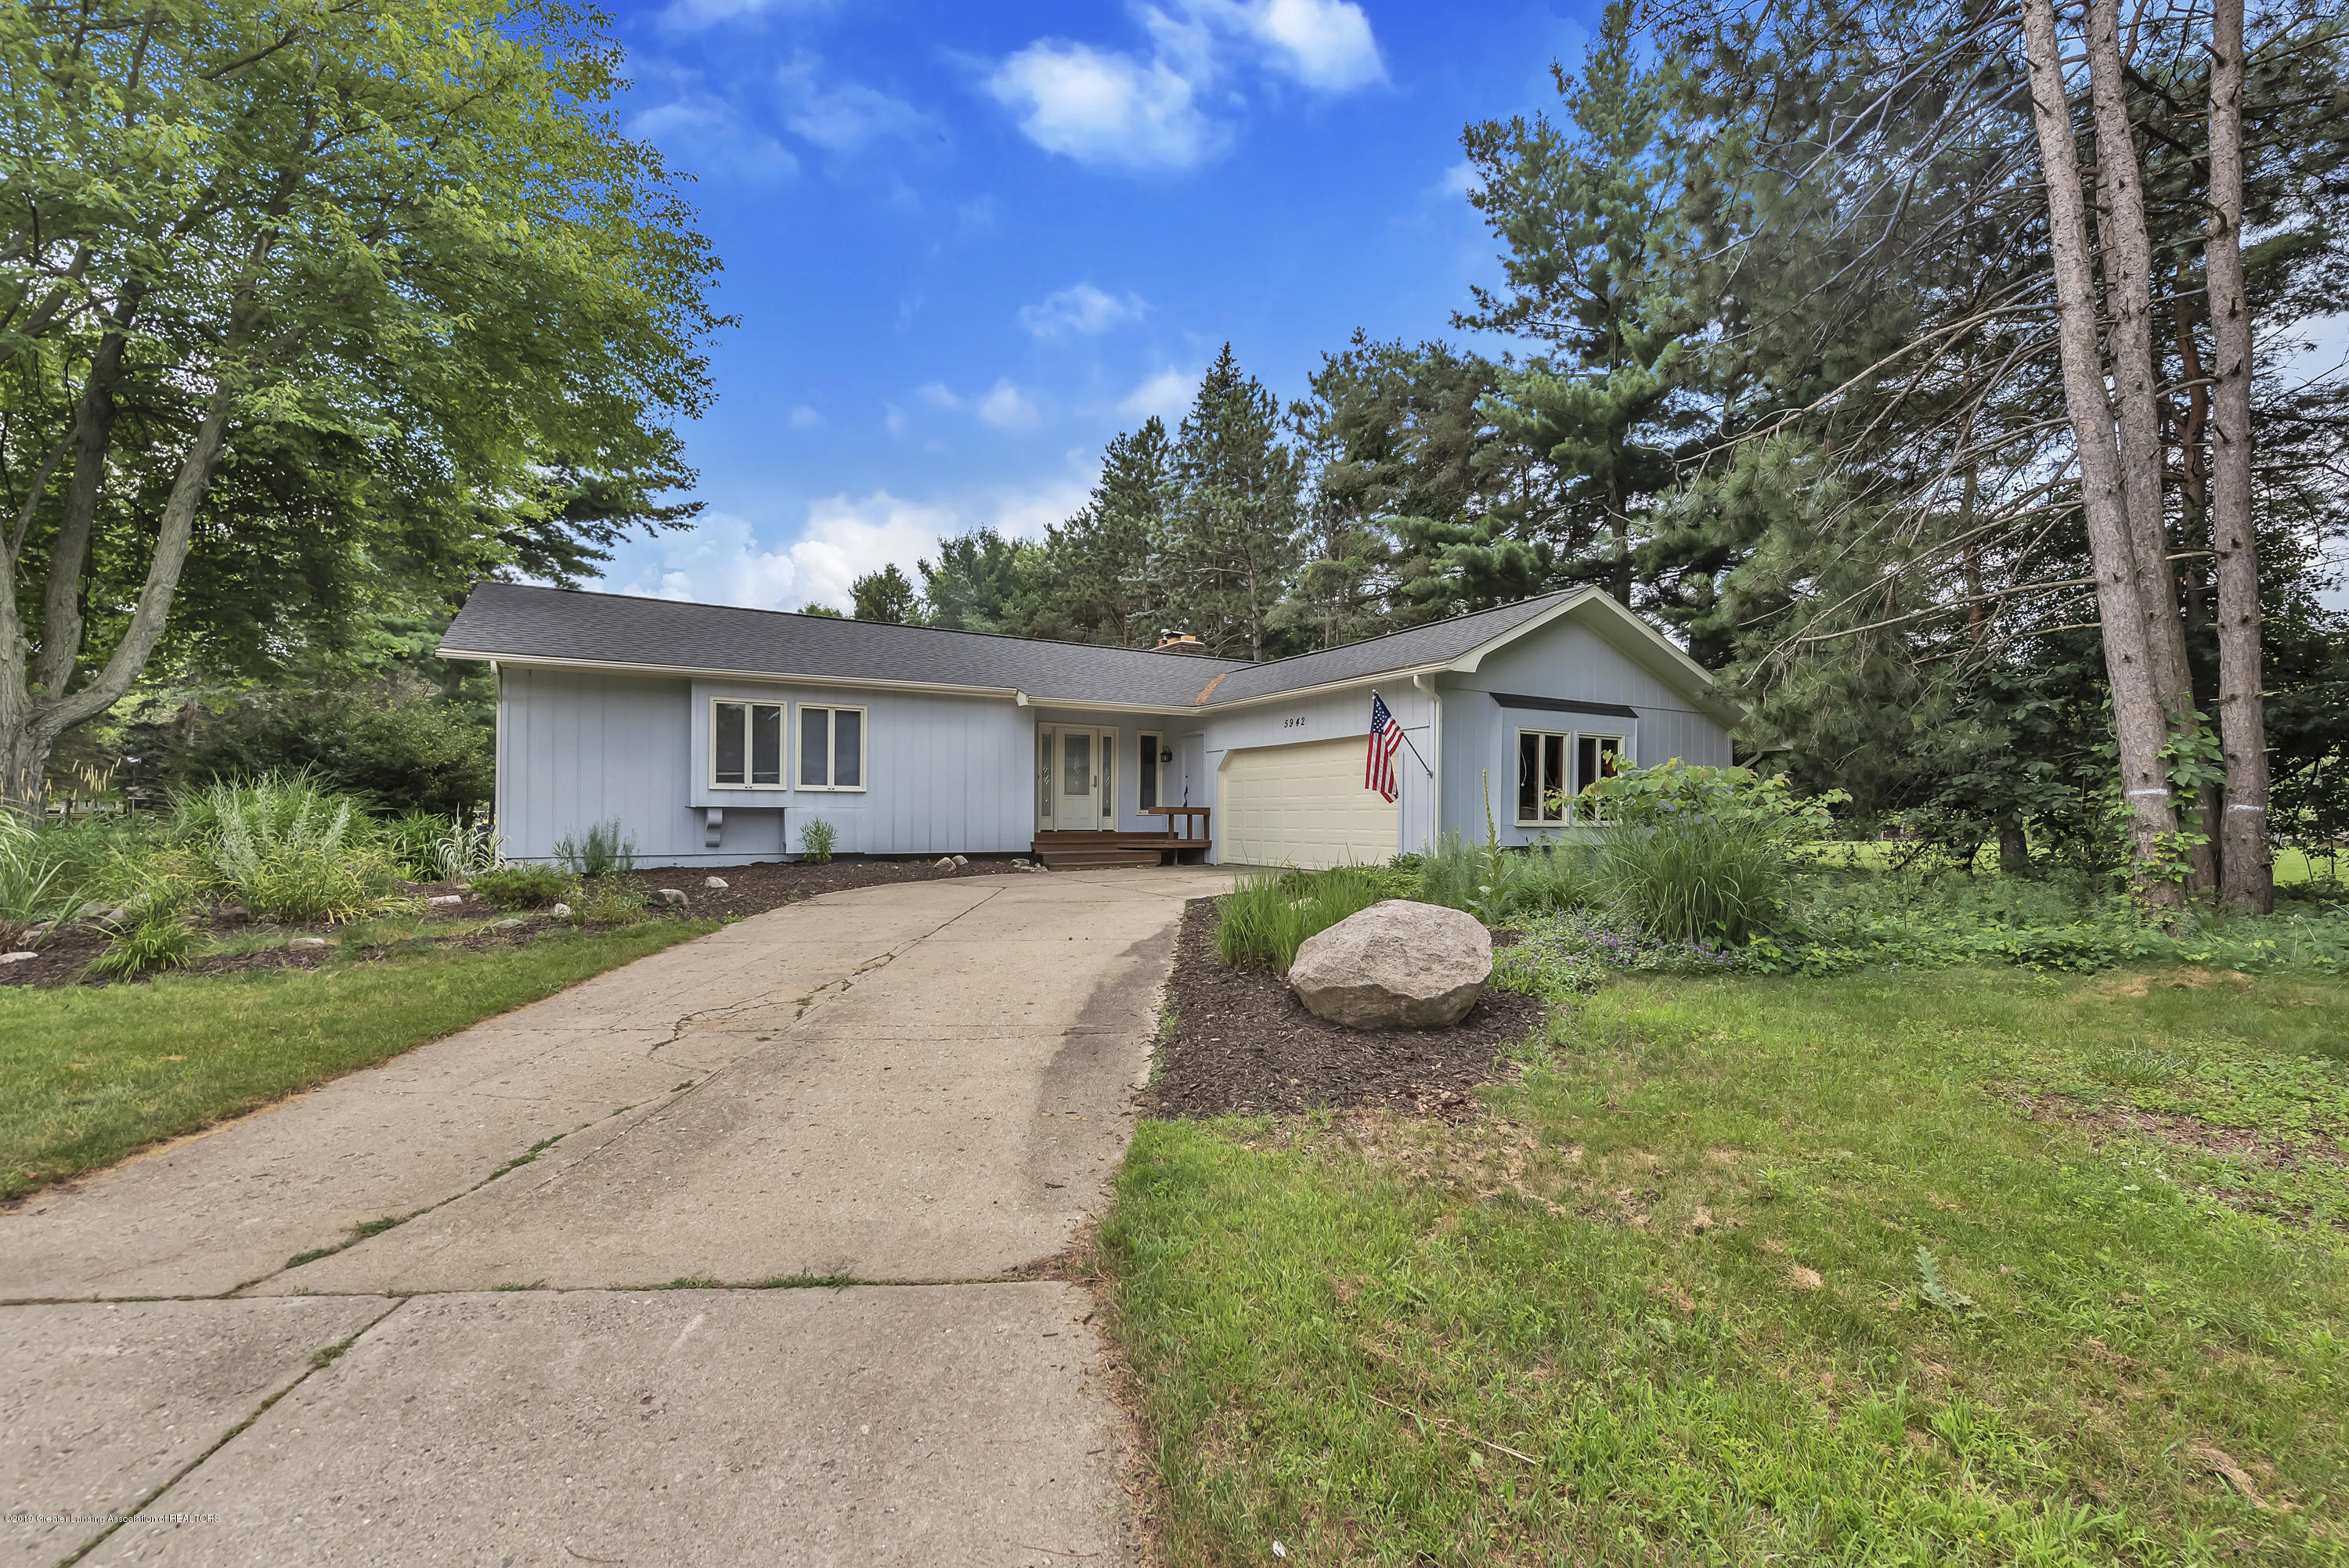 5942 W Sleepy Hollow Ln - 5942-W-Sleepy-Hollow-Ln-East-Lansing-MI- - 4